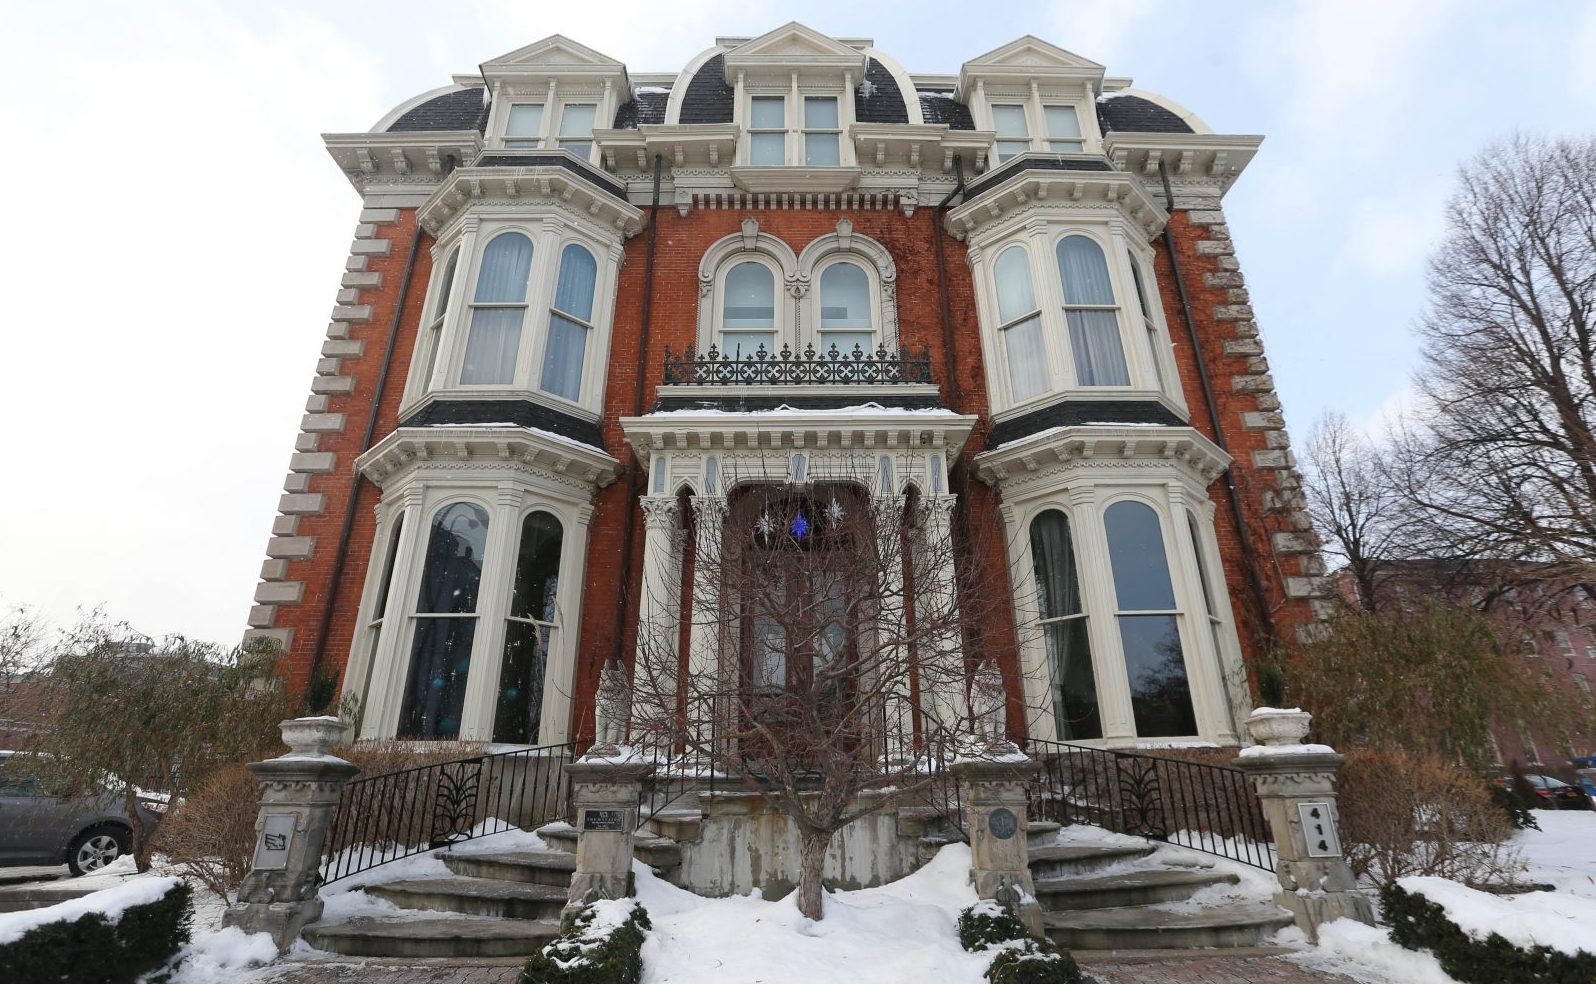 The Mansion on Delaware Avenue is a 28-room luxery hotel.  It opened in 2001 after $2.7 million in renovations to the 1870 building.  (Sharon Cantillon/Buffalo News)